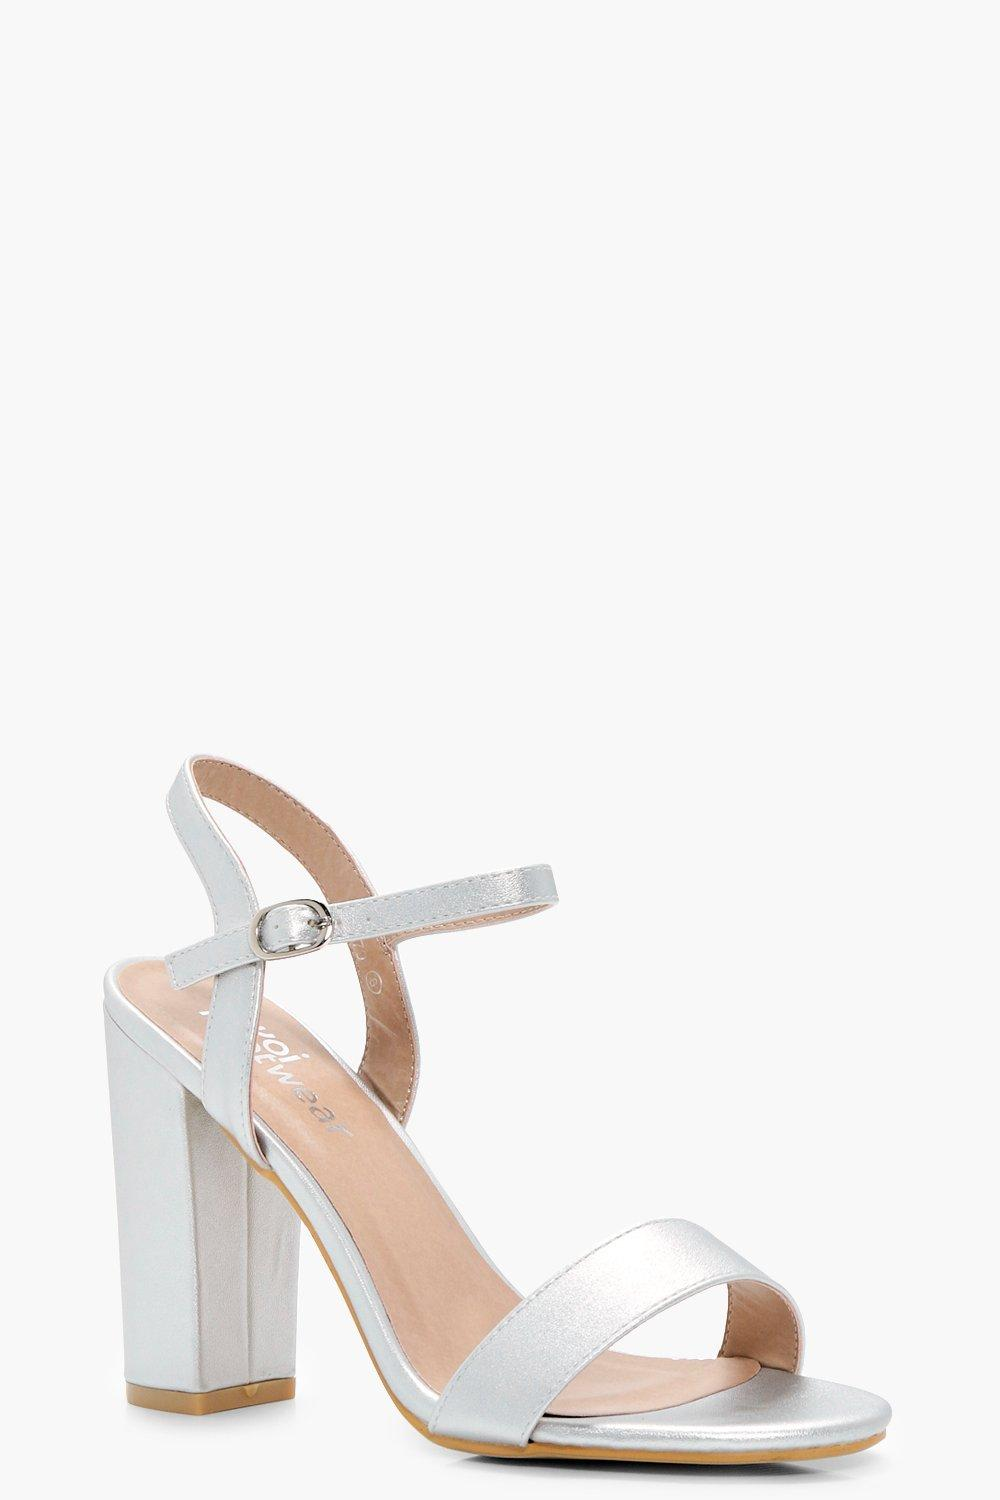 7770256ff6d Block Heel Barely There Heels. Hover to zoom